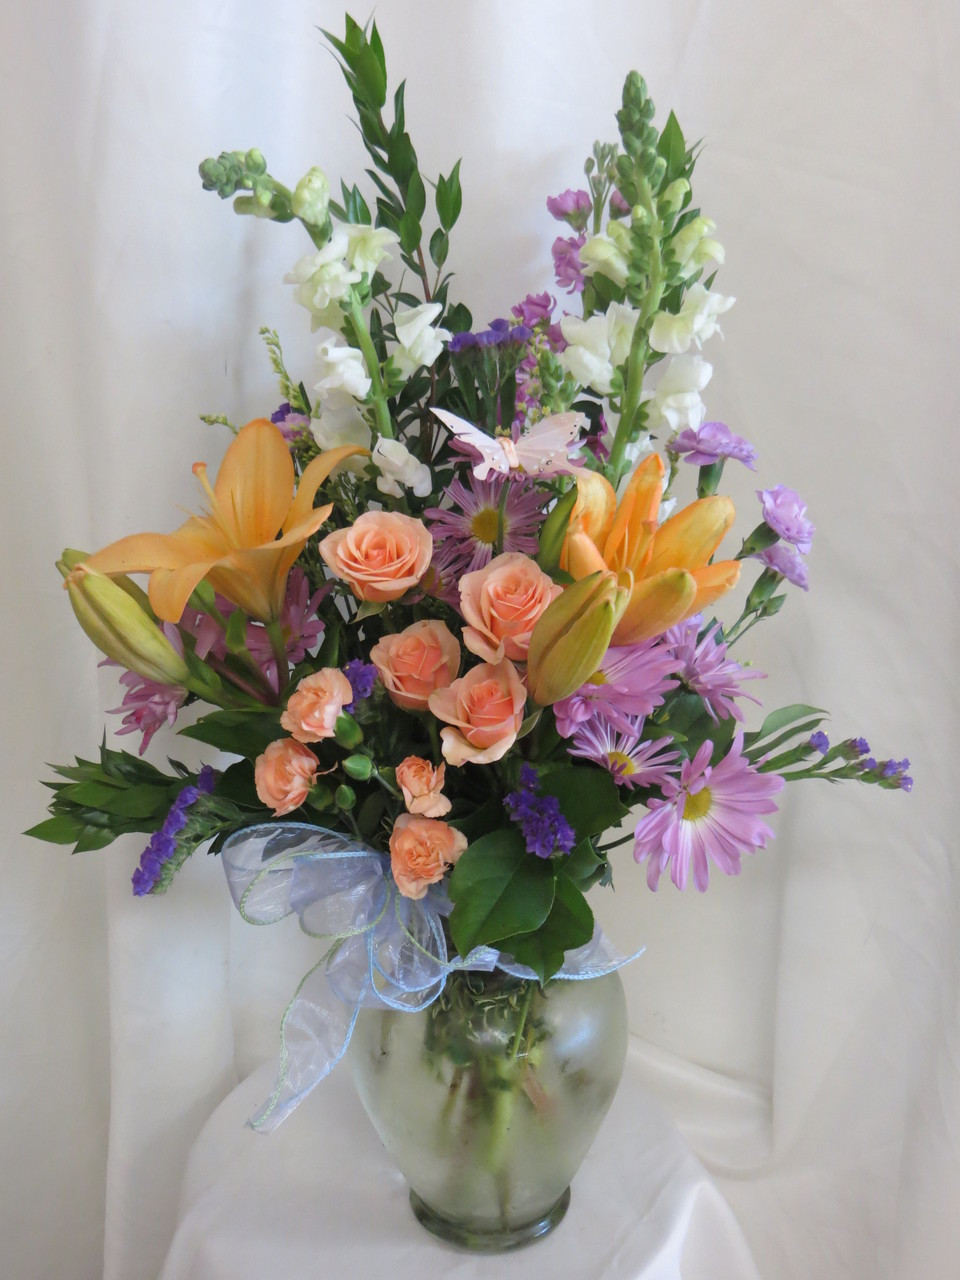 Your pasadena florist offers daily delivery of beautiful flowers in the moonlight orange lily and rose bouquet by enchanted florist pasadena texas flowers and izmirmasajfo